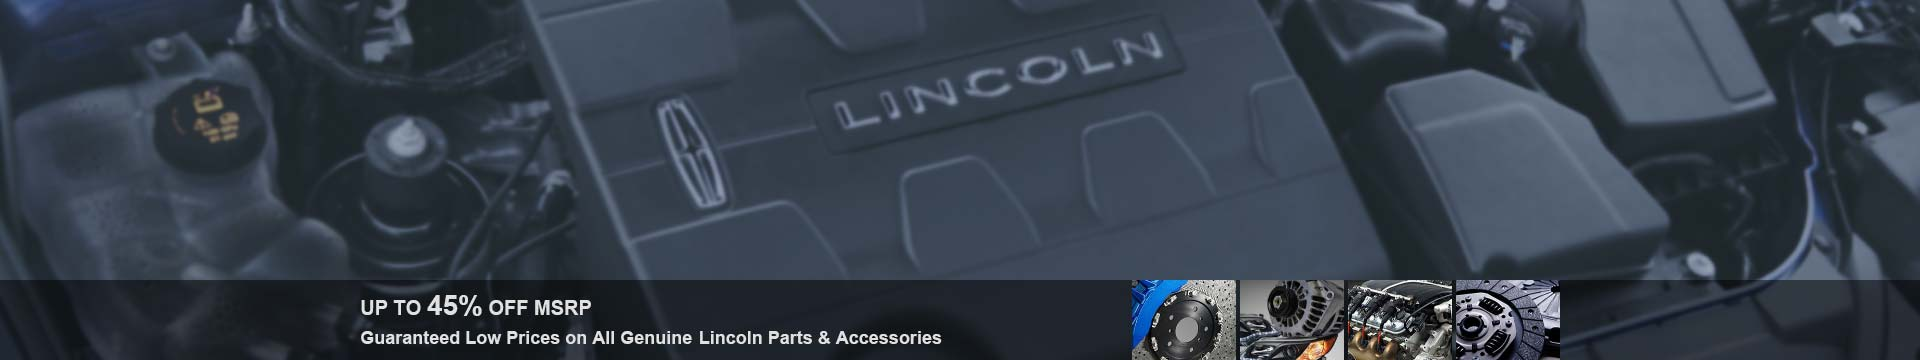 Guaranteed low prices on all Genuine Lincoln Mark VI parts